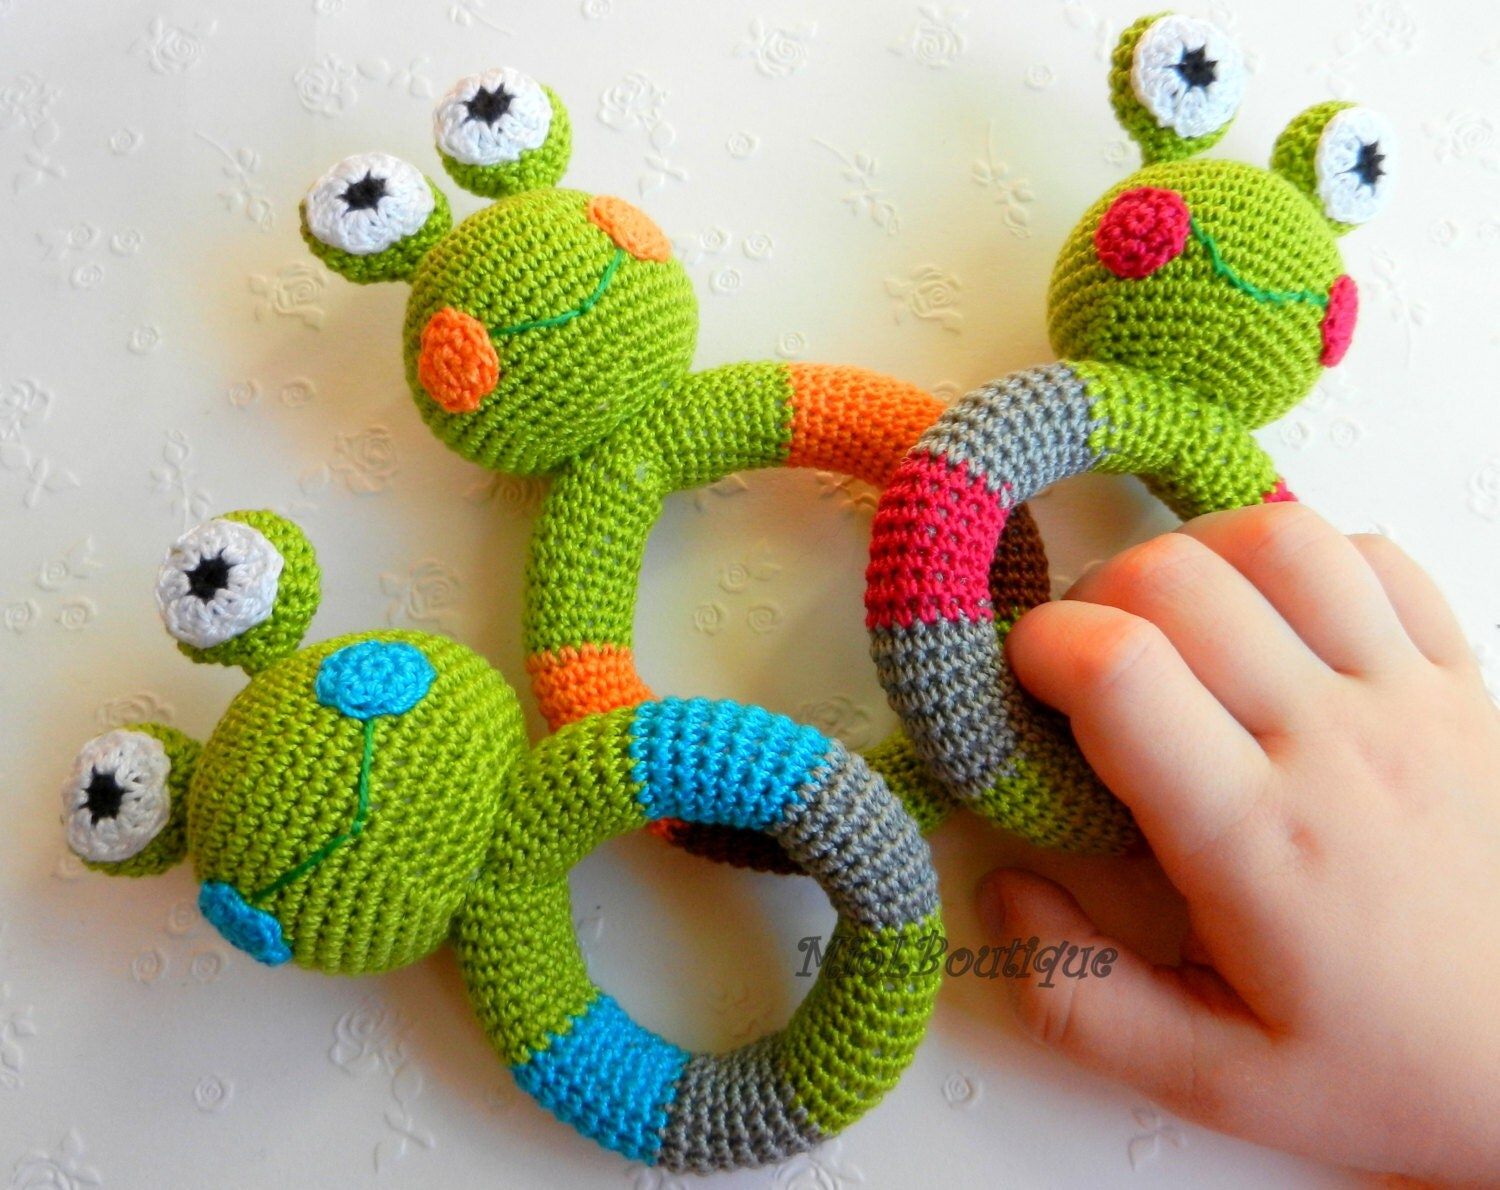 Crochet baby toy Grasping and Teething Toys Frog Stuffed toys